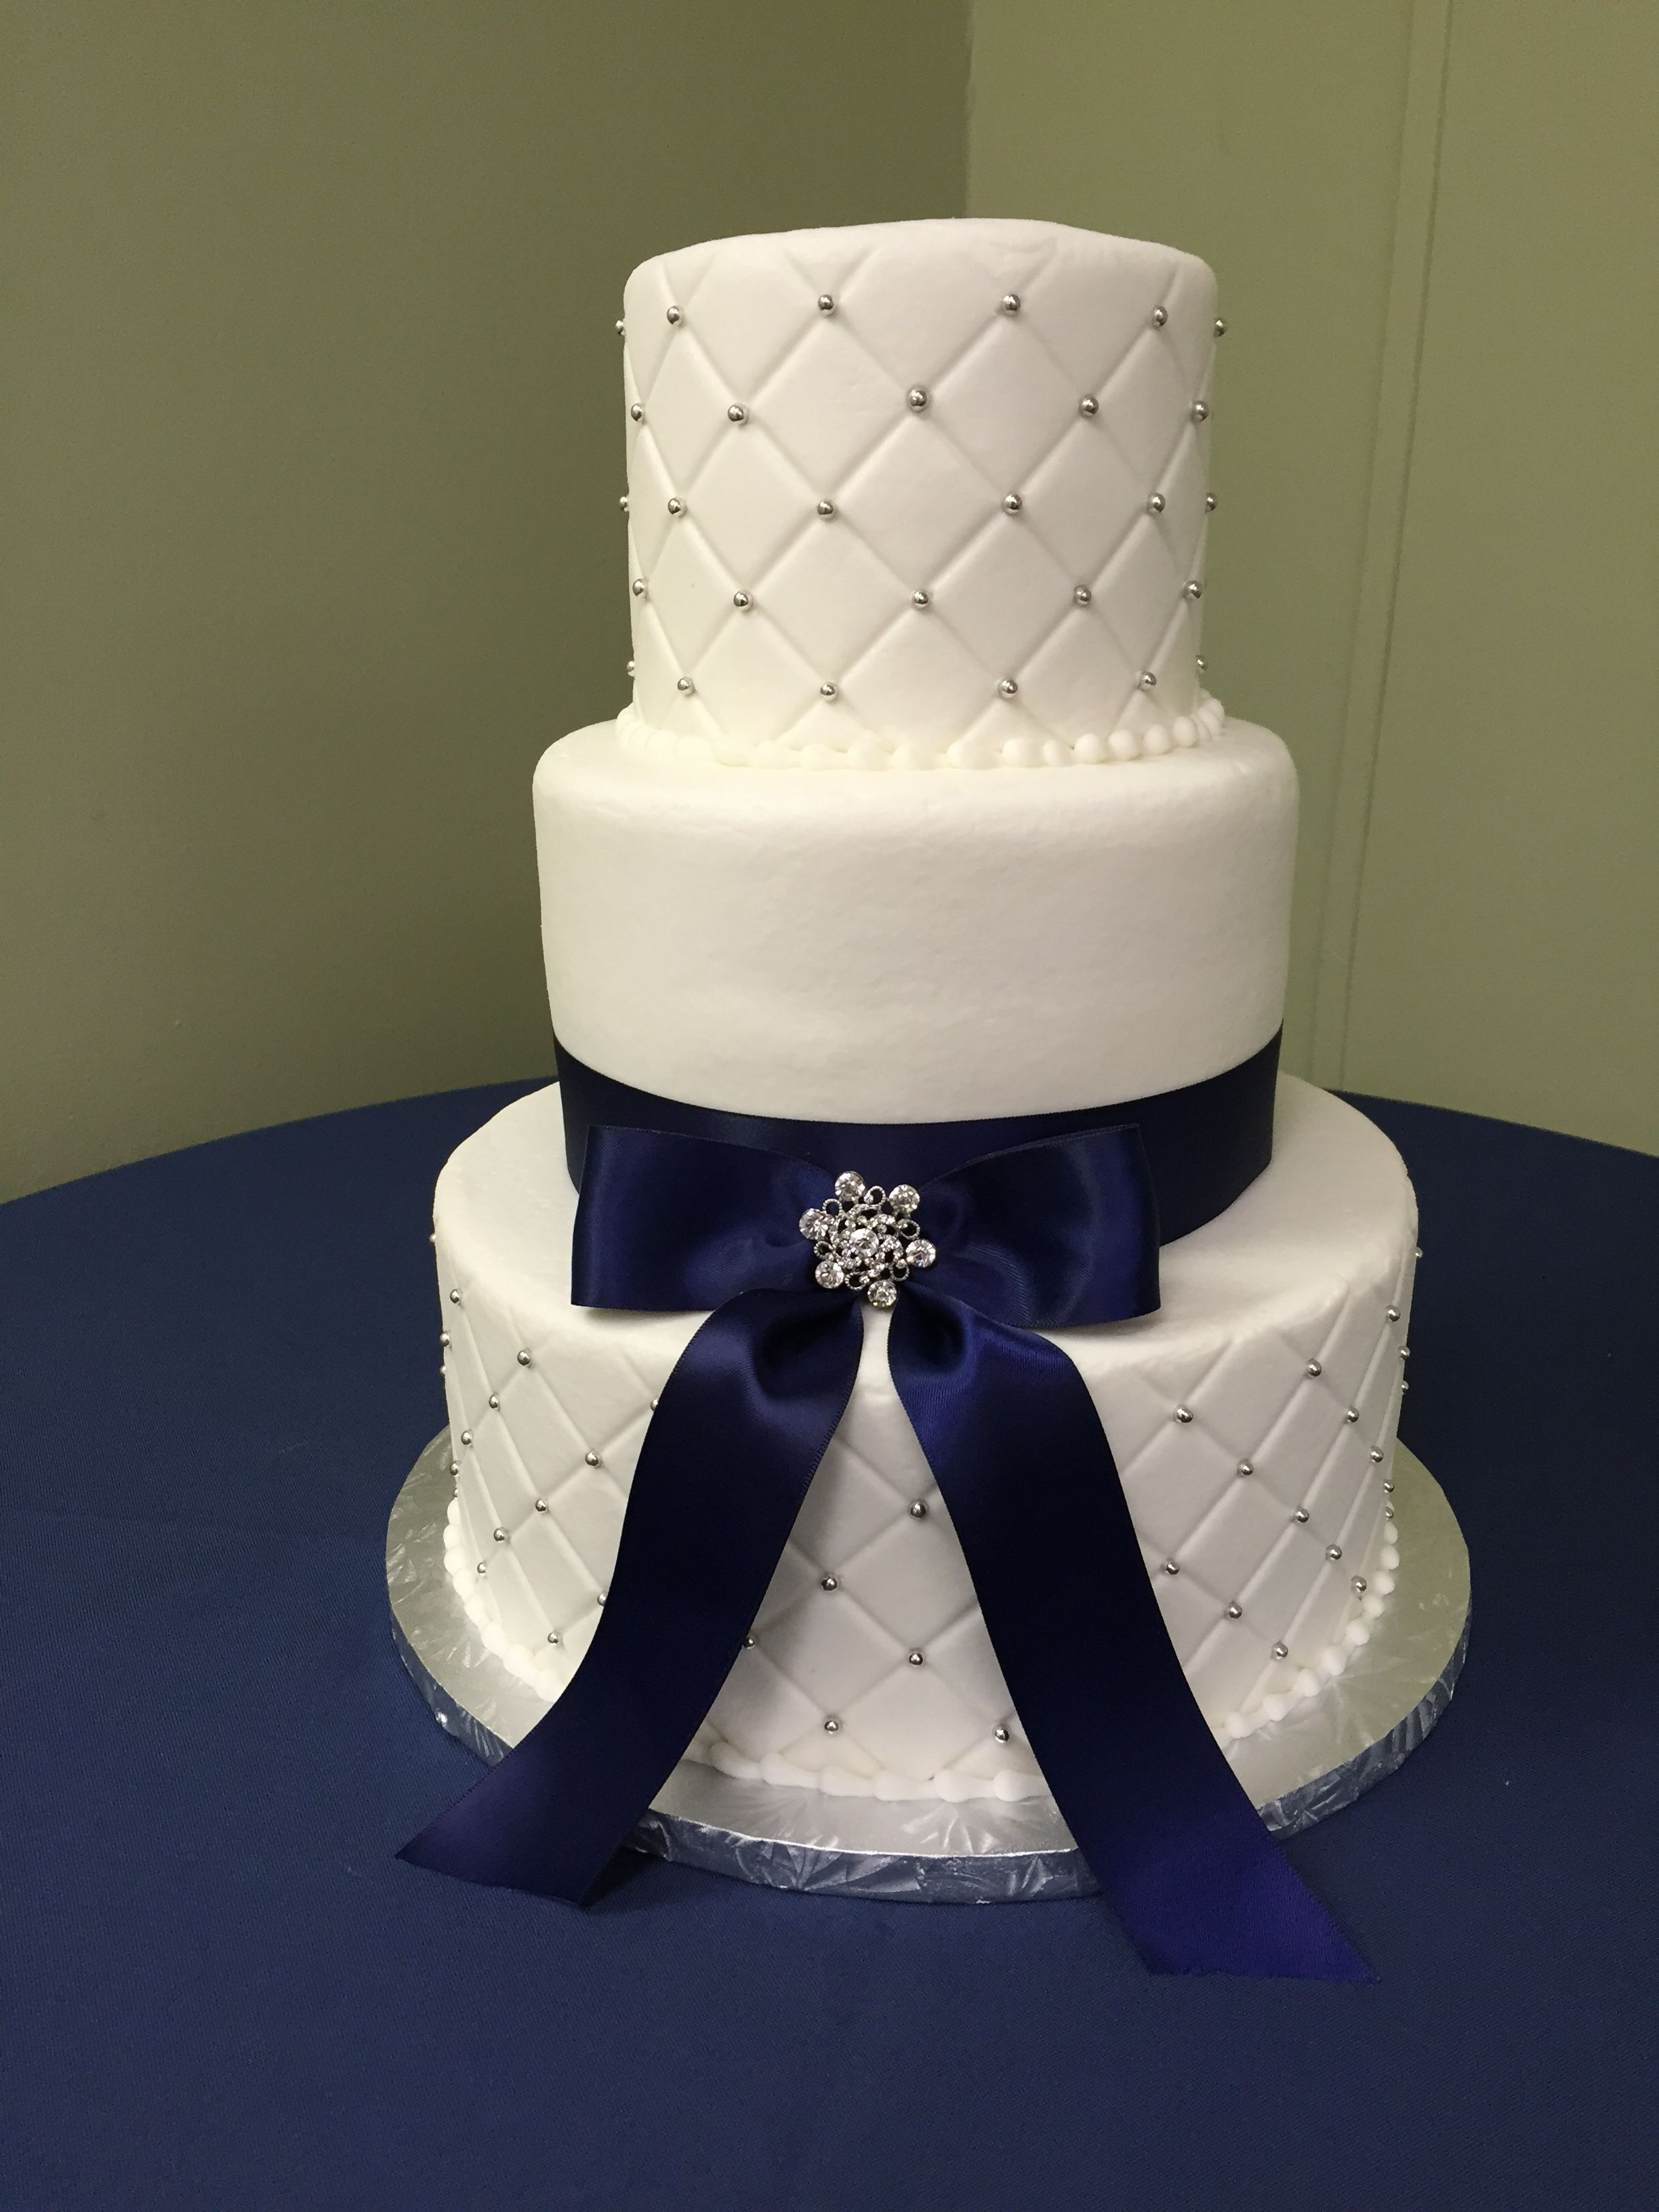 Cute 3tier round wedding cake with navy blue bow and